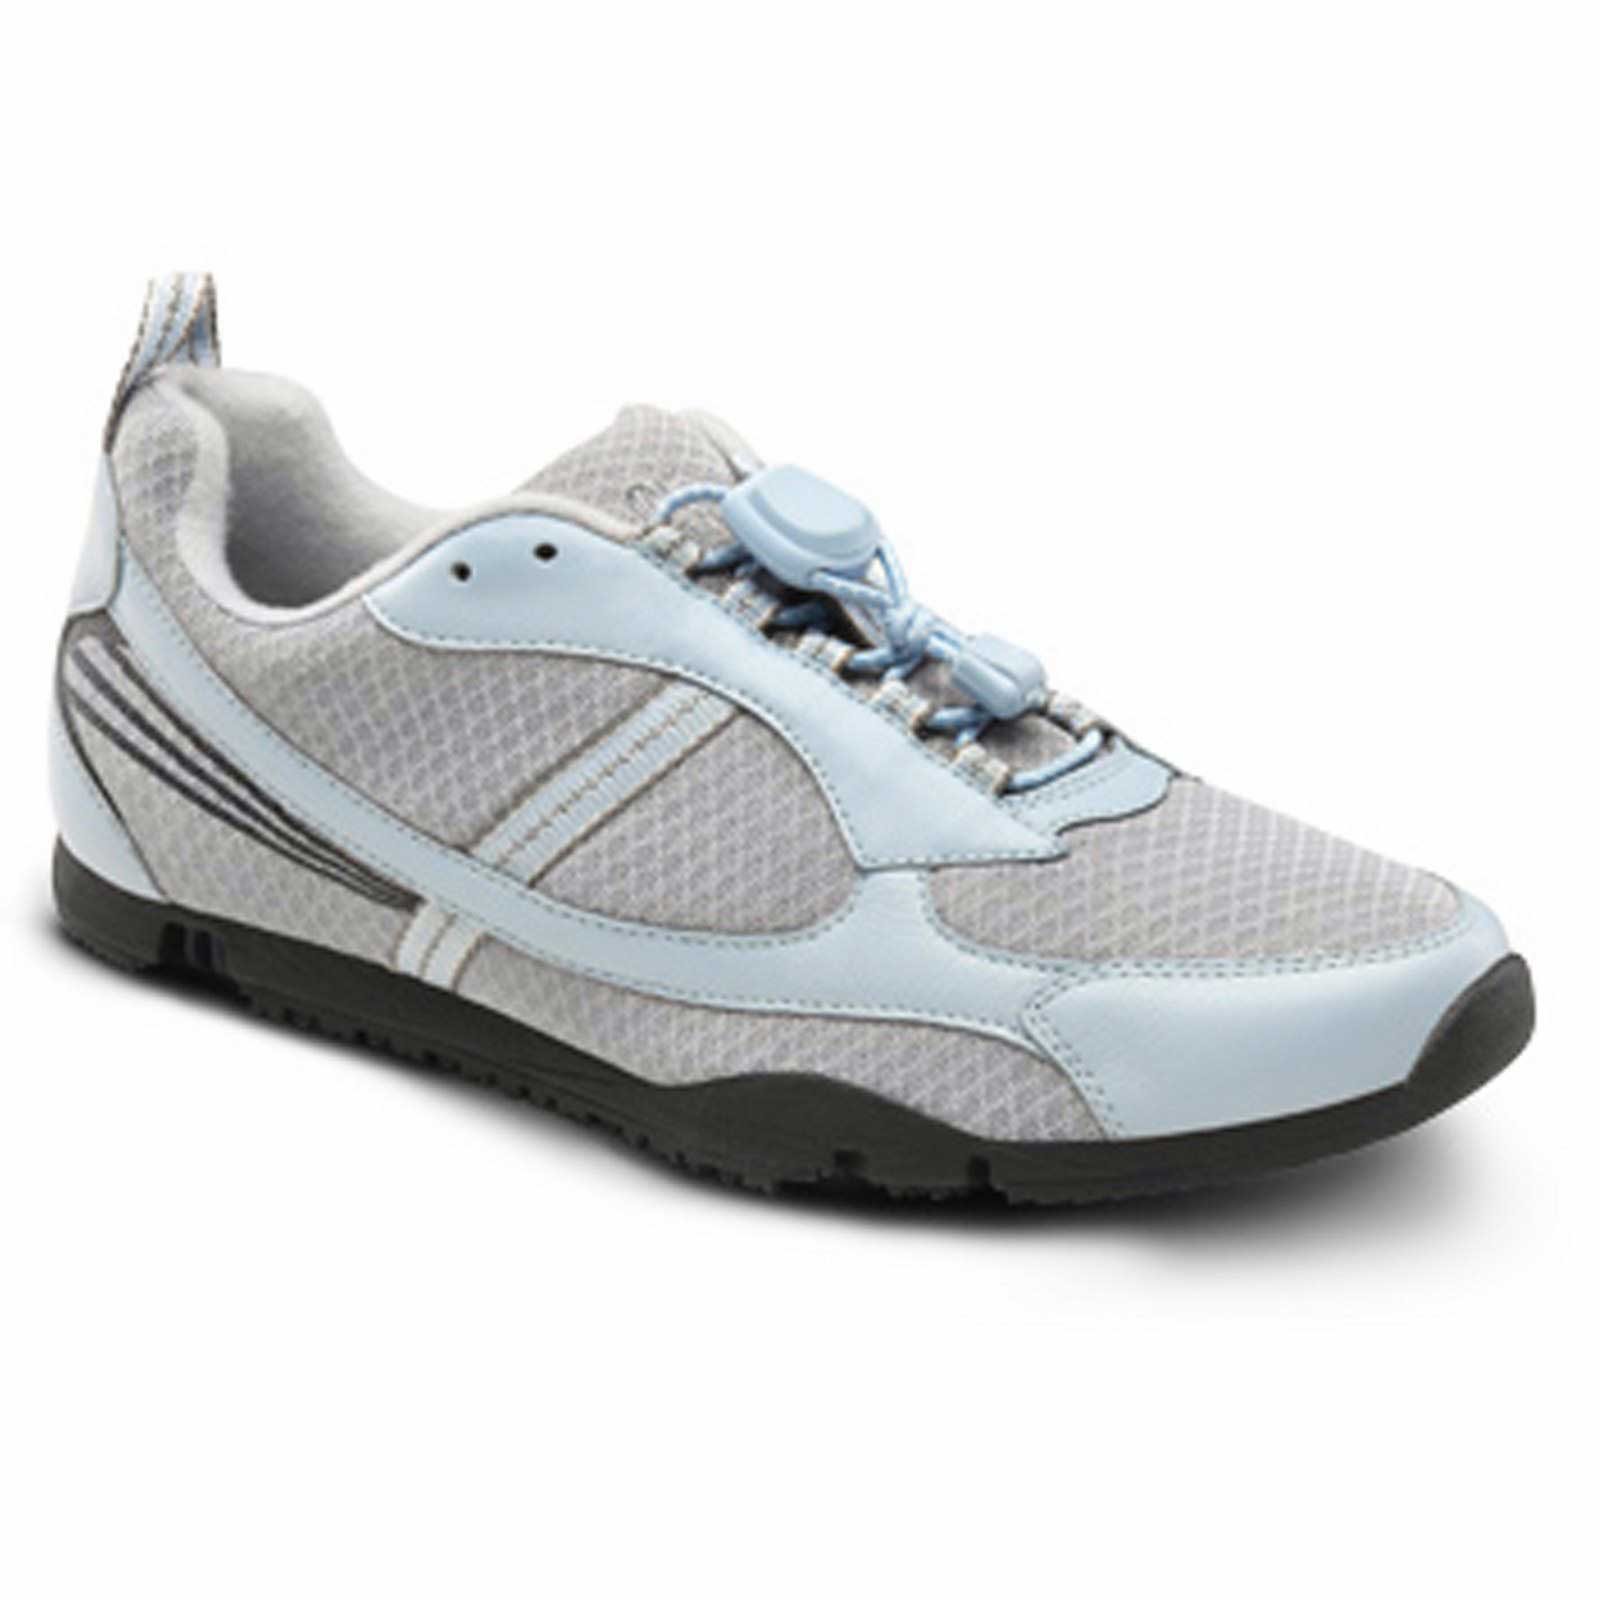 Dr Comfort Sandy Flex Oa Women S Shoe